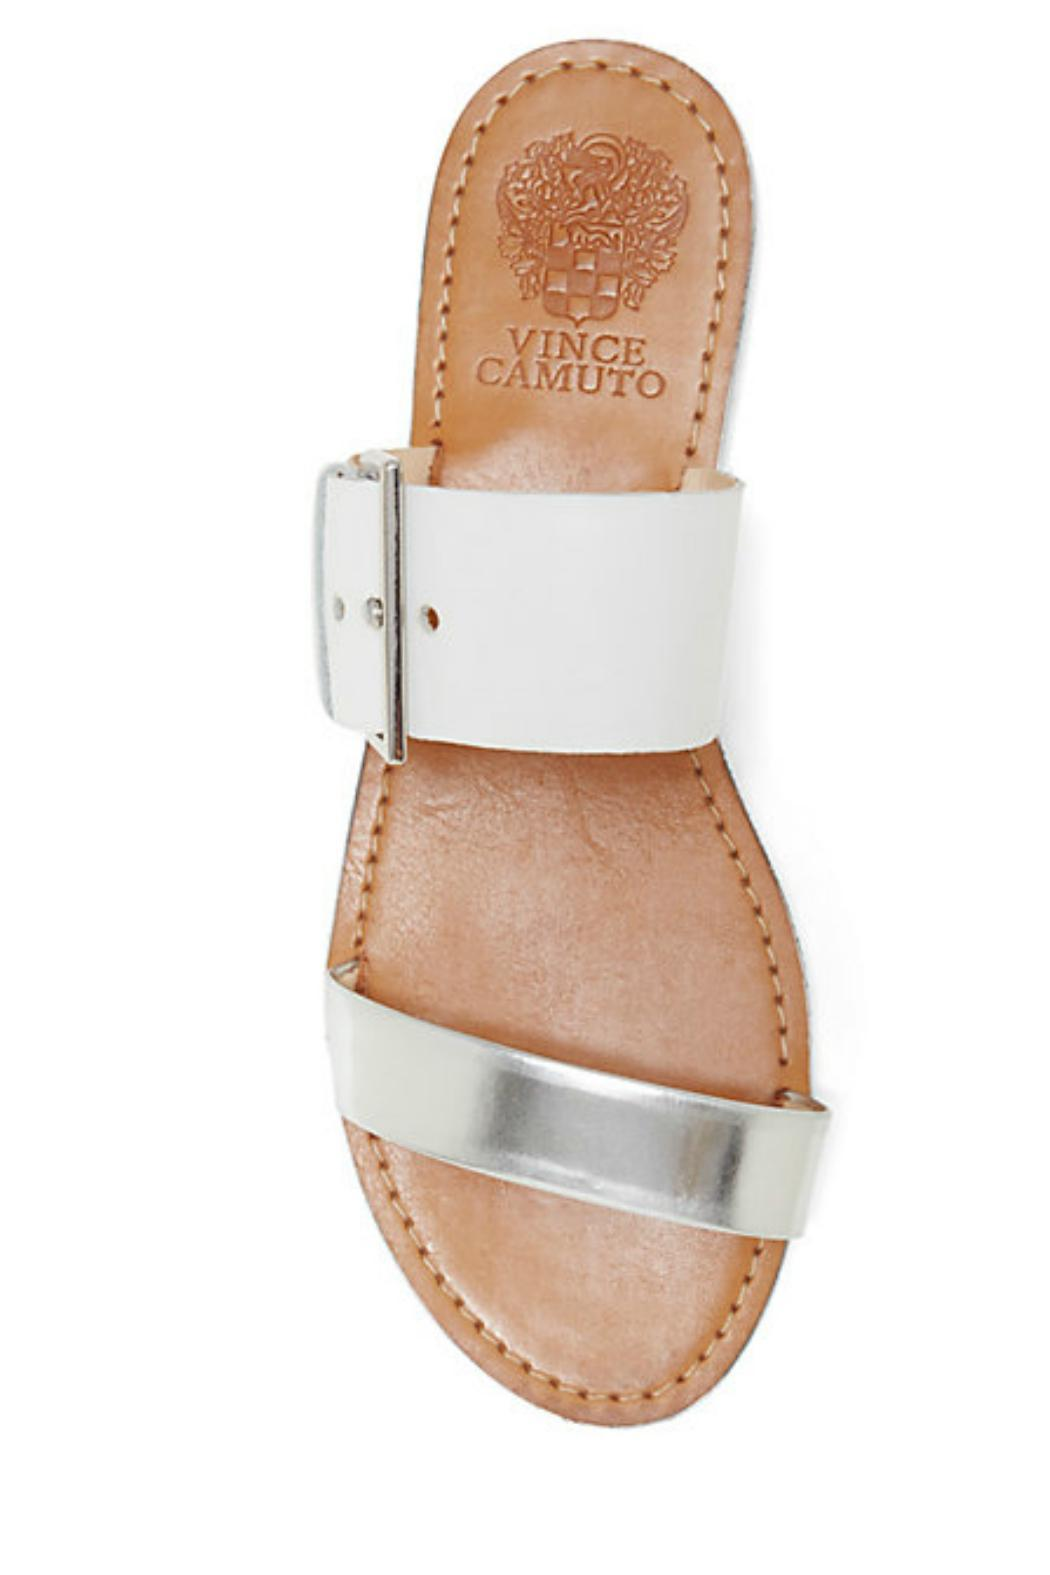 76eba43aa943c8 Vince Camuto Silver White Sandal from Pennsylvania by Well-Heeled ...